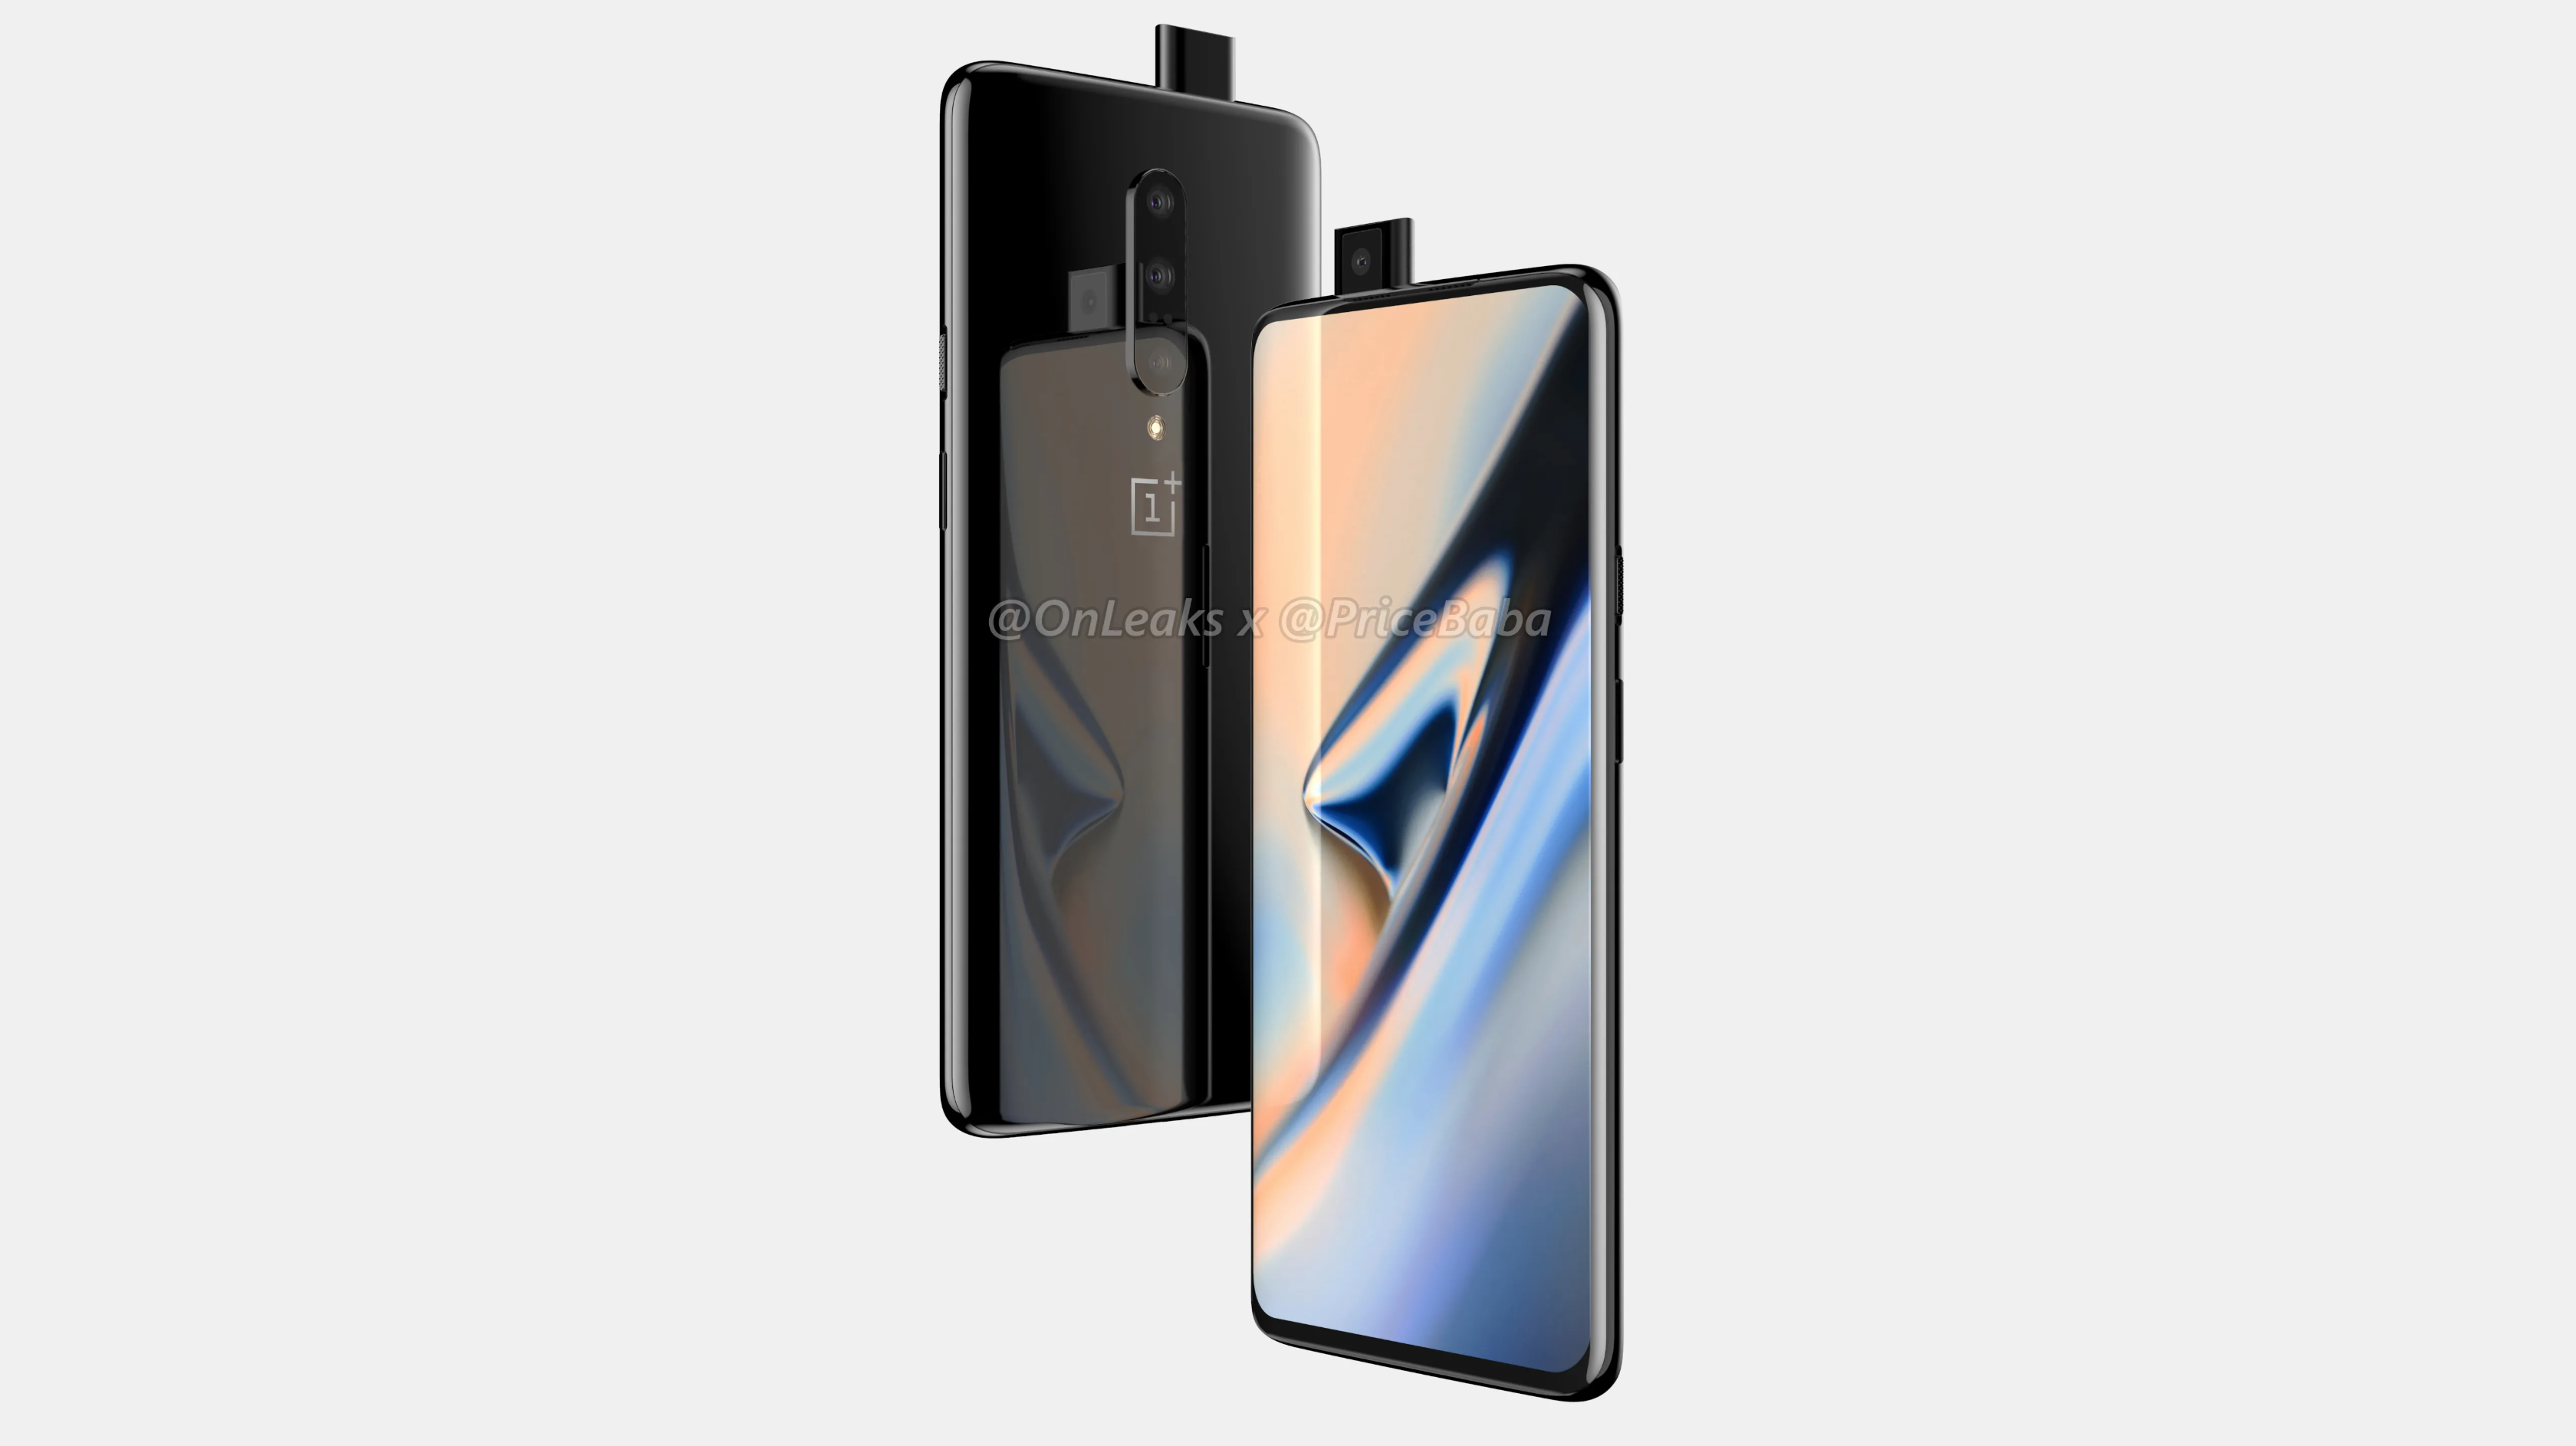 Update: Full evaluation] The OnePlus 7 Pro will have an 'A+' grade